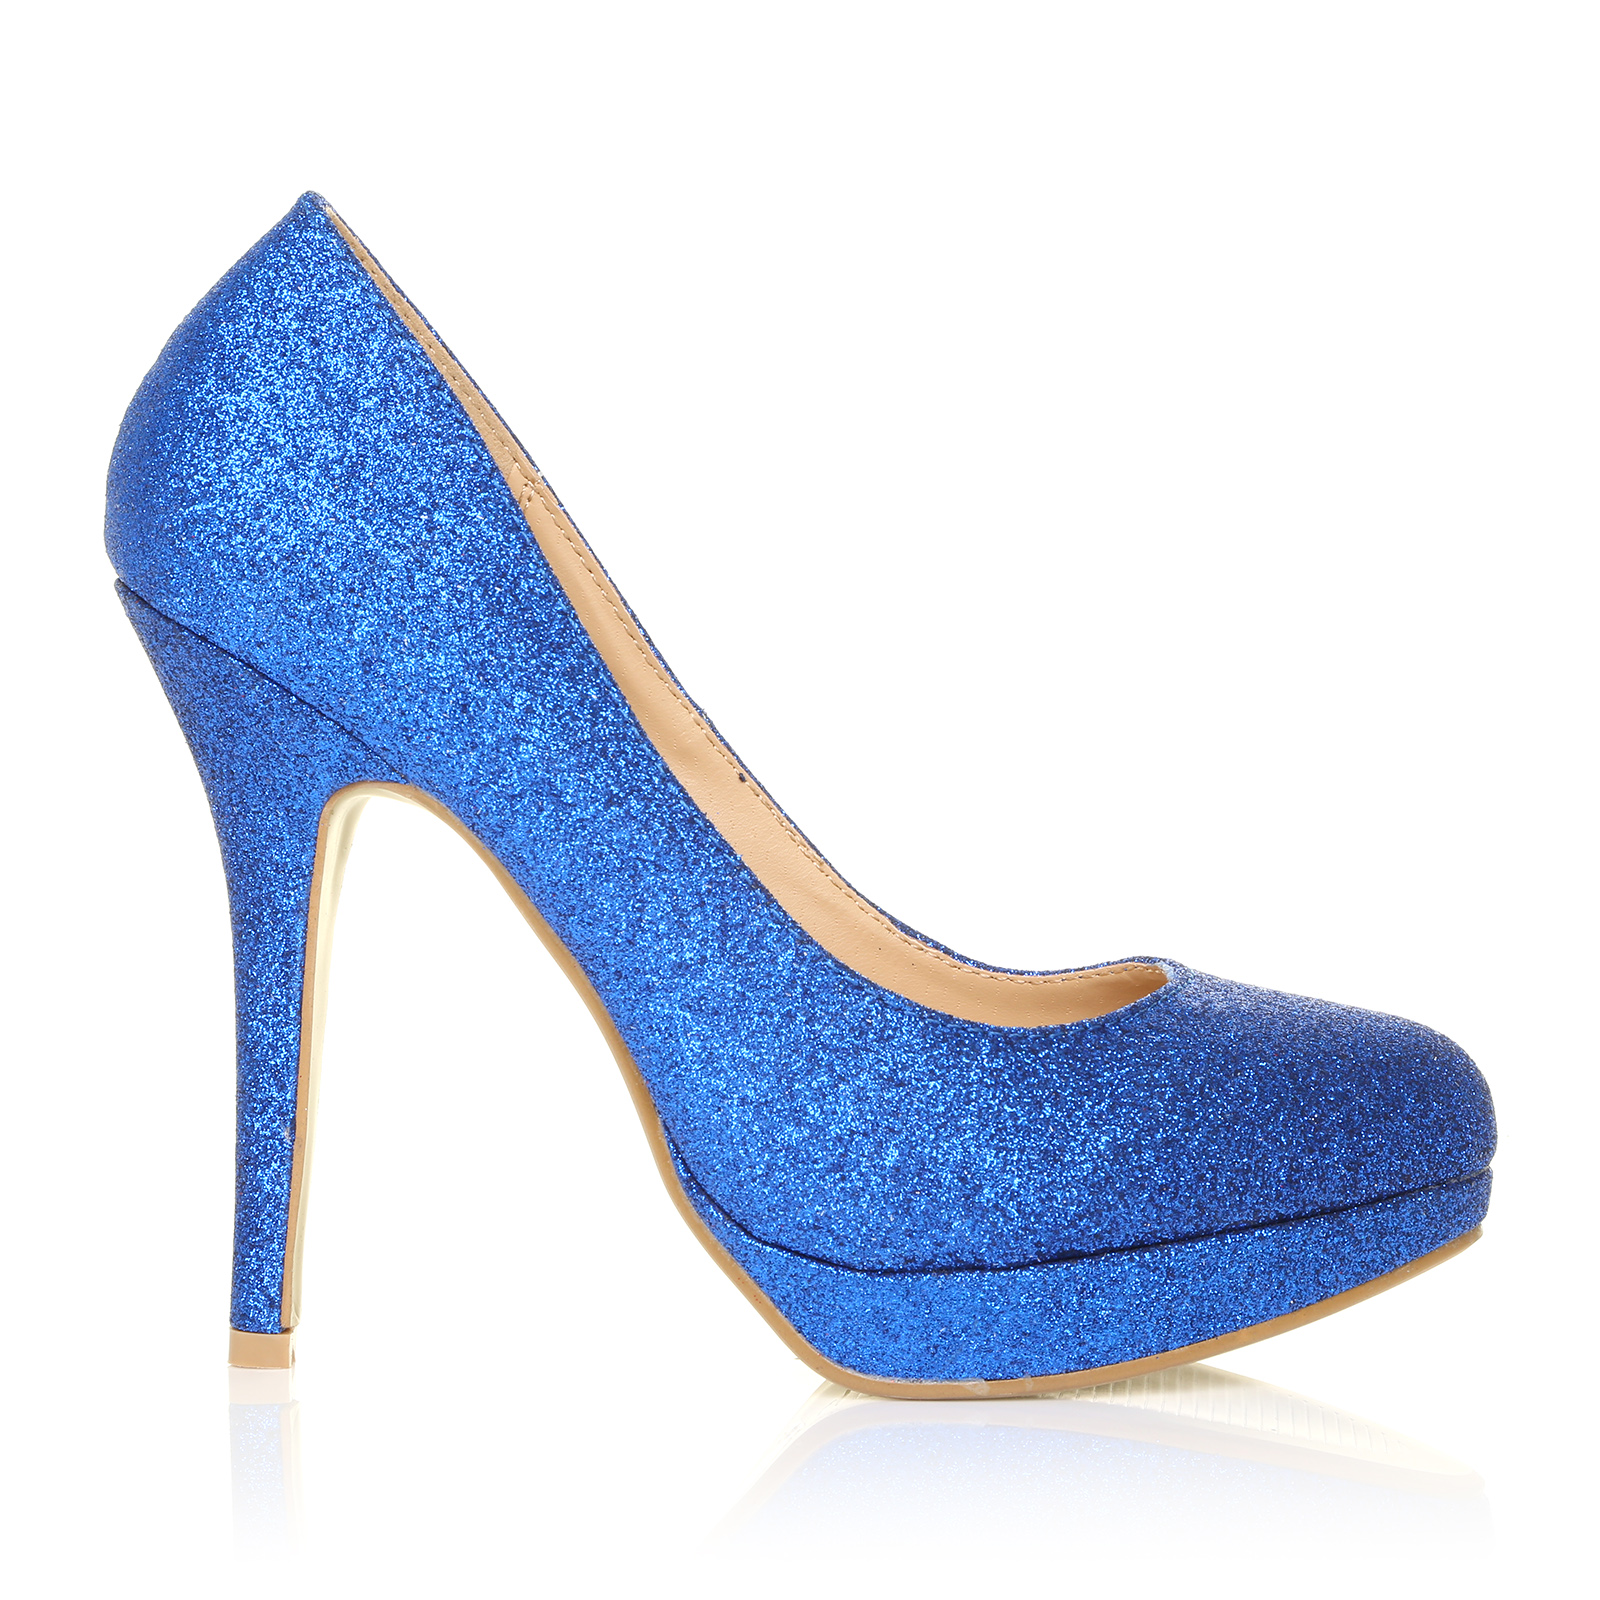 blue glitter stiletto high heel platform court shoes